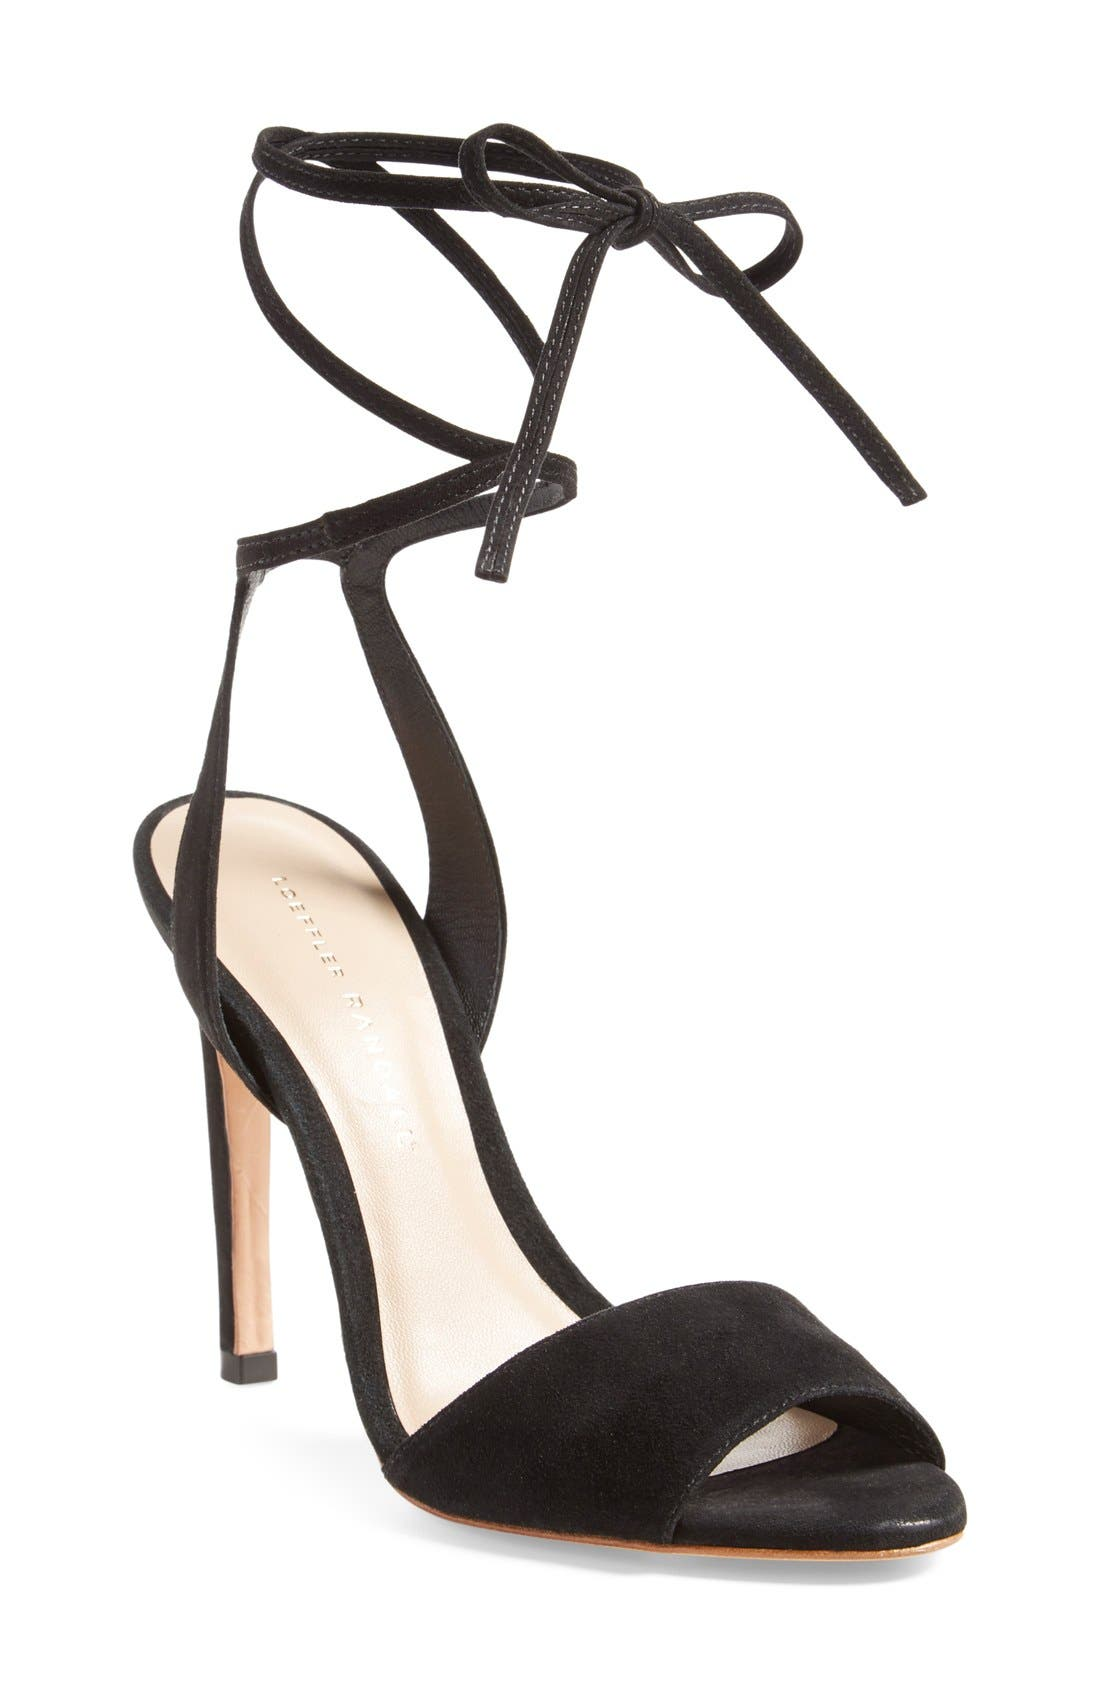 LOEFFLER RANDALL 'Ellie' Lace-Up Sandal